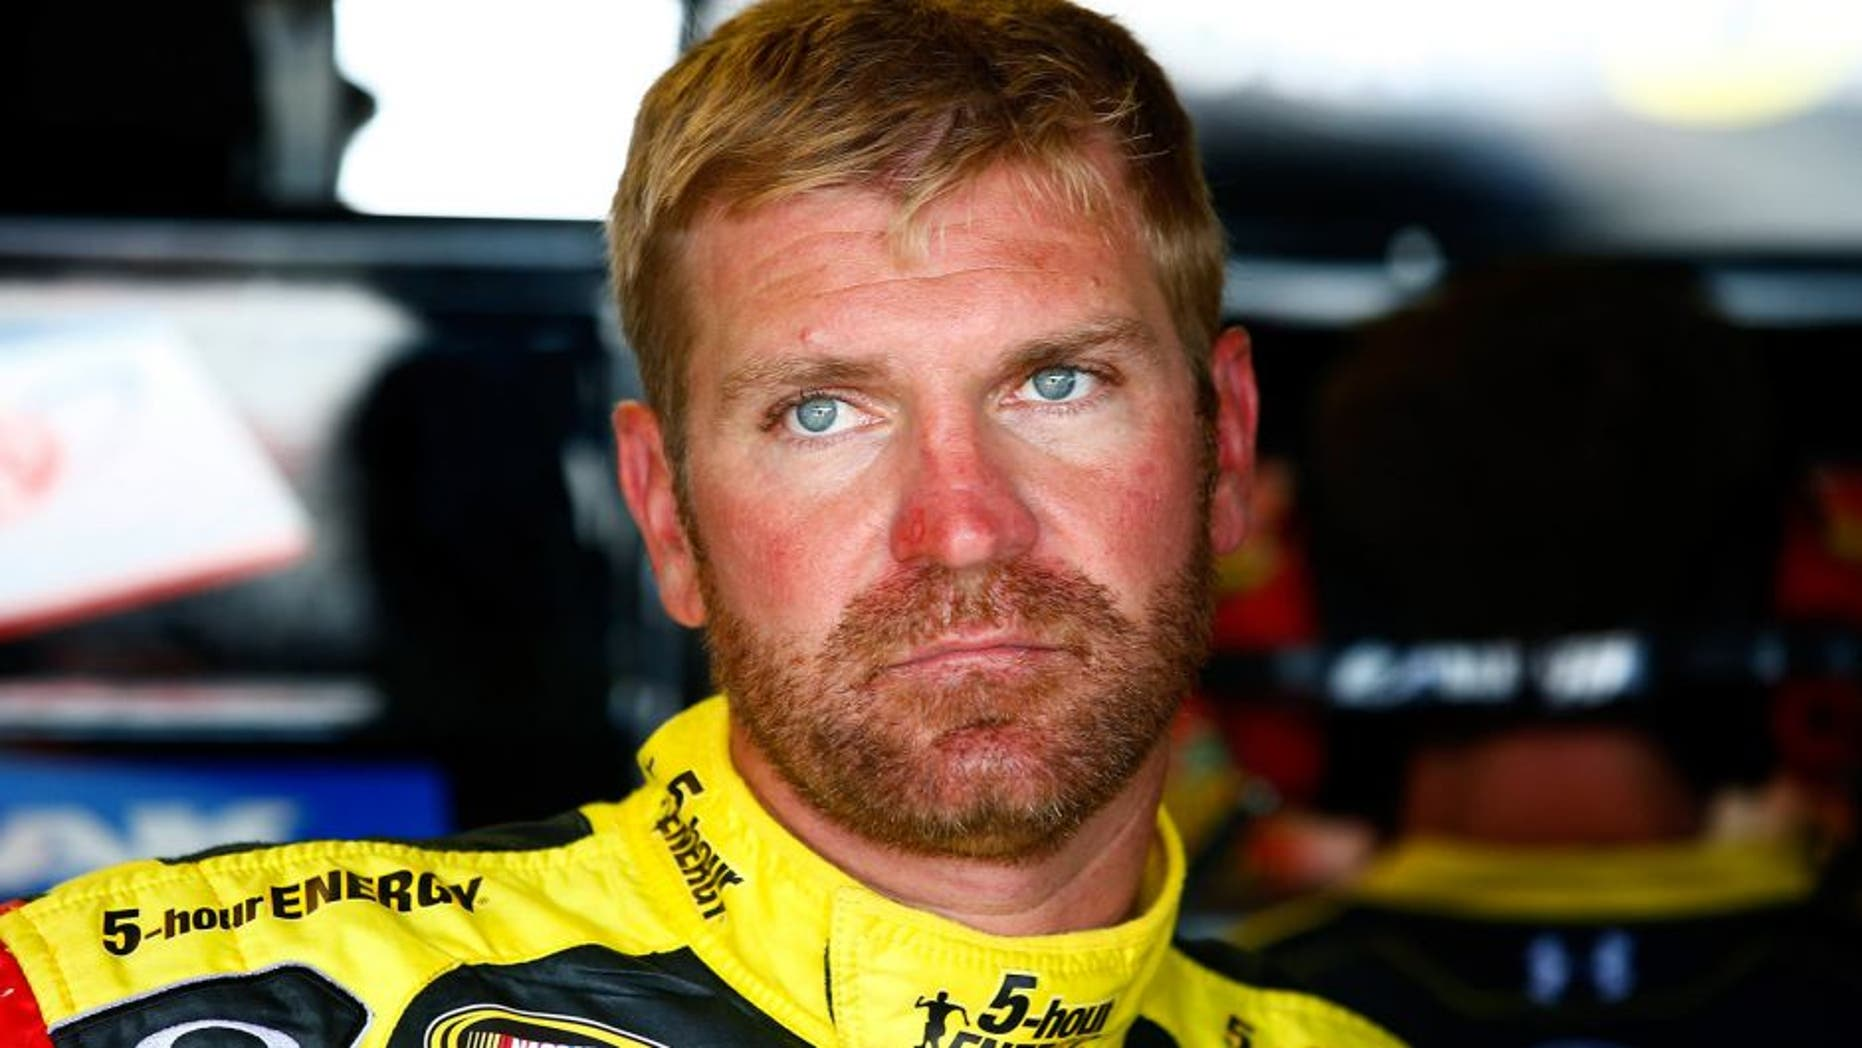 RICHMOND, VA - SEPTEMBER 05: Clint Bowyer, driver of the #15 5-hour ENERGY Toyota, stands in the garage area during practice for the NASCAR Sprint Cup Series Federated Auto Parts 400 at Richmond International Raceway on September 5, 2014 in Richmond, Virginia. (Photo by Jared Wickerham/Getty Images)